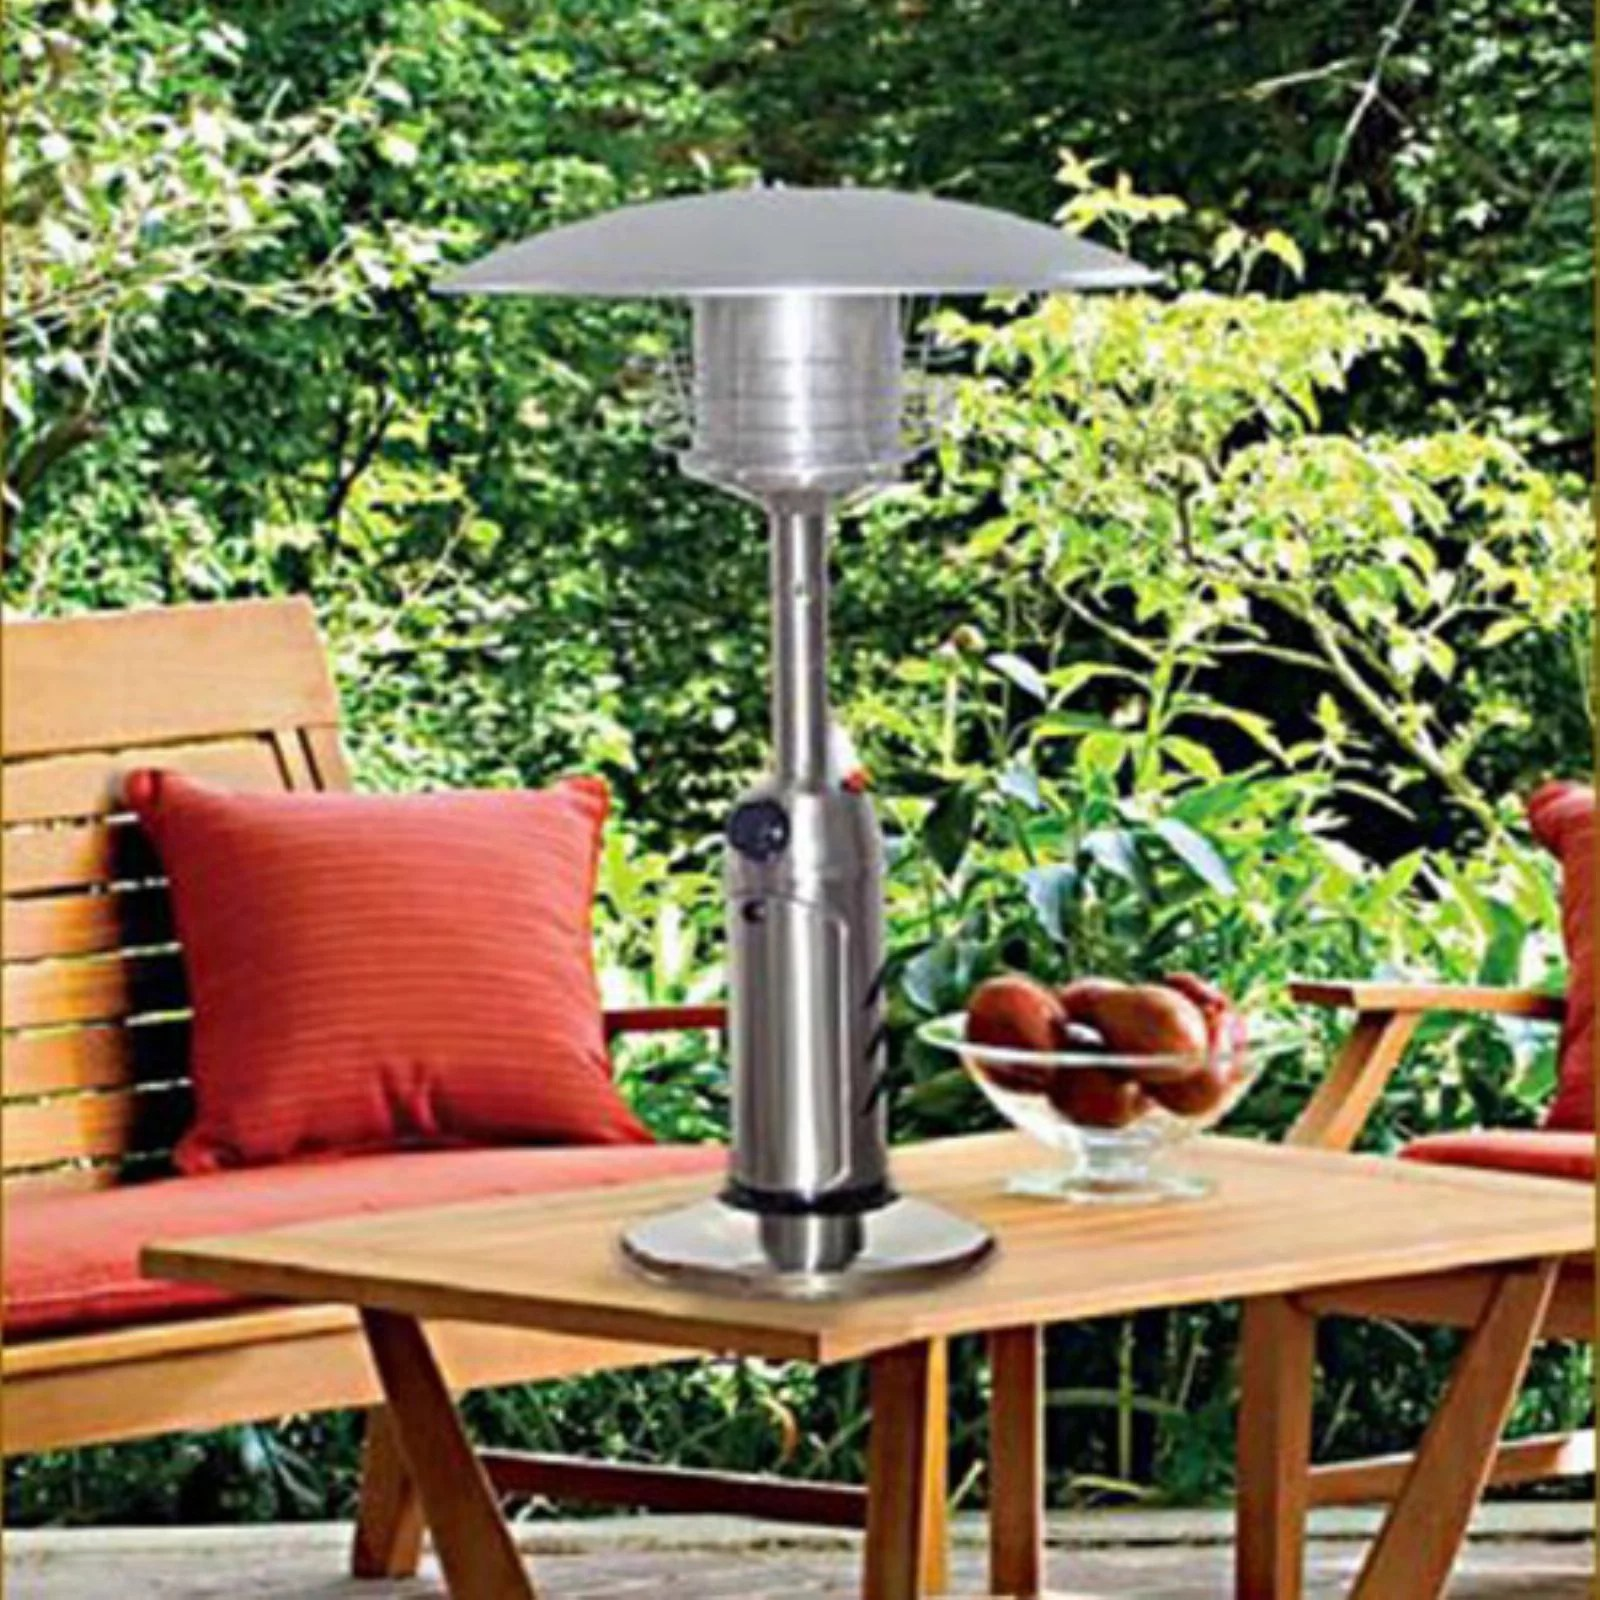 hiland portable stainless steel patio heater